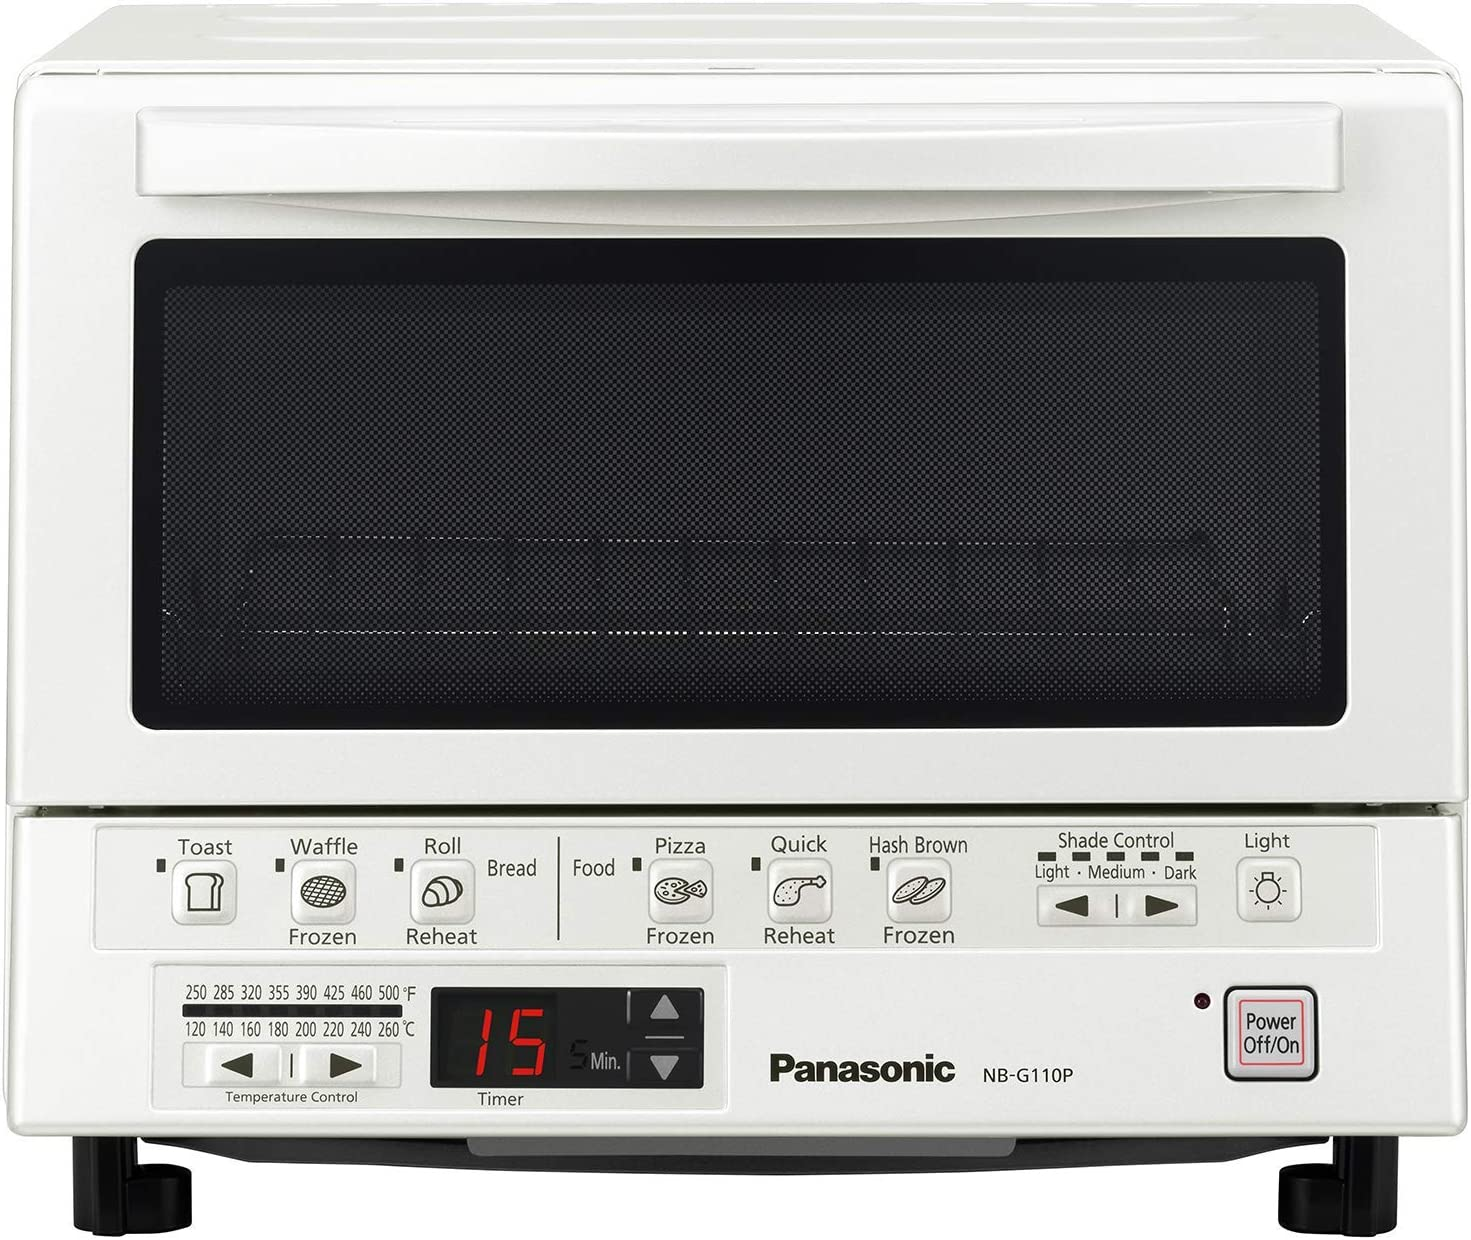 Panasonic FlashXpress Compact Toaster Oven with Double Infrared Heating, Crumb Tray and 1300 Watts of Cooking Power – 4 Slice Countertop Toaster Oven - NB-G110P-W (White) (Renewed)